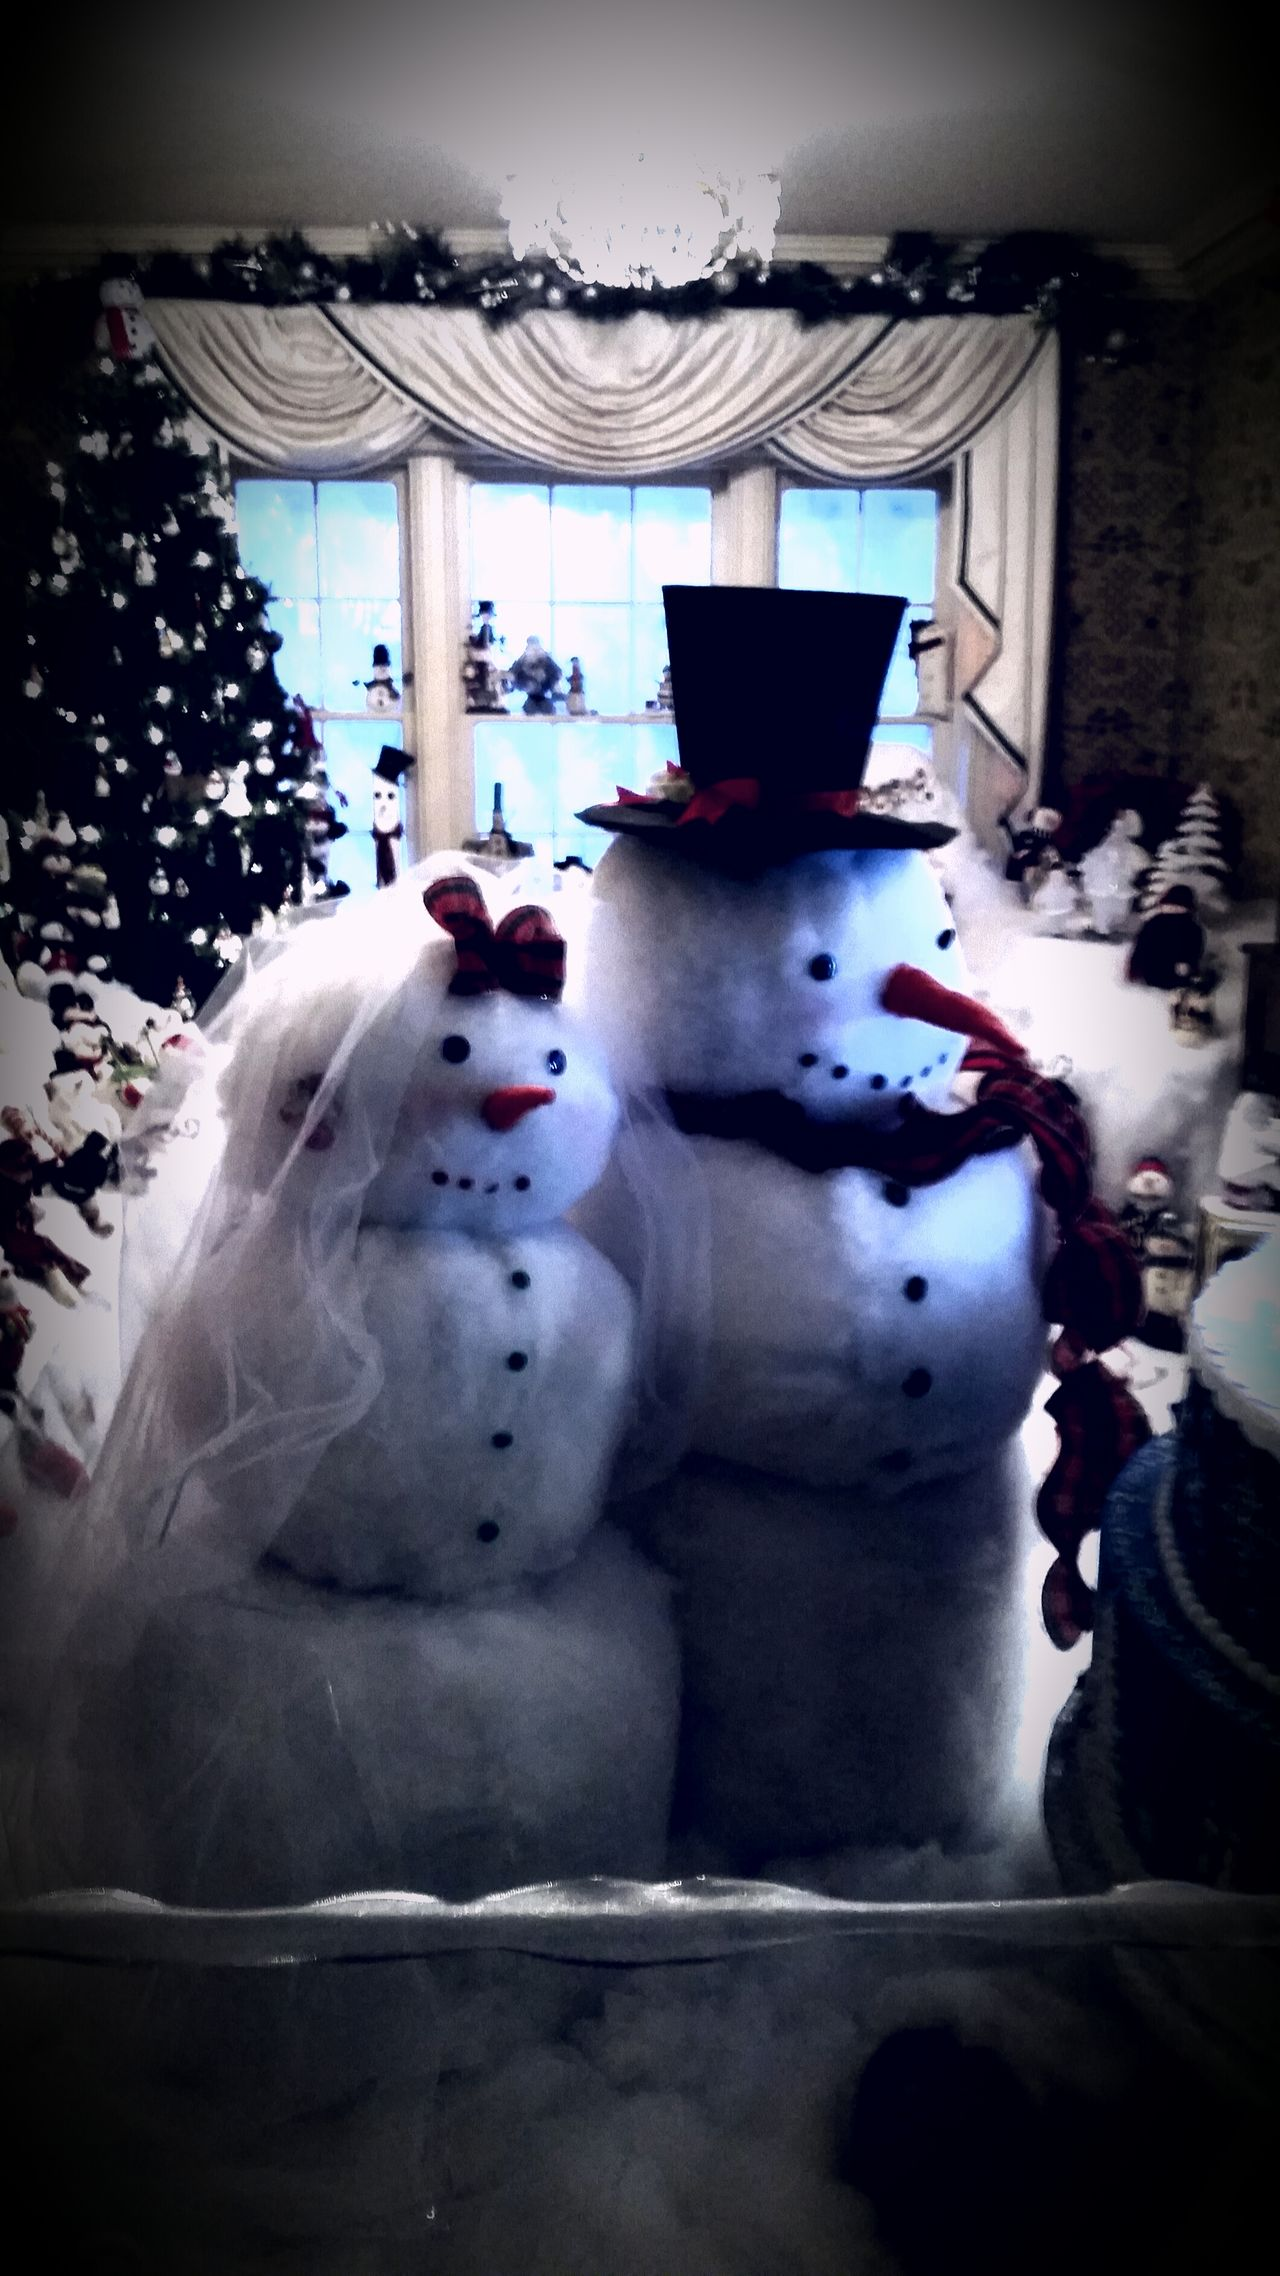 No People Indoors  Close-up Day Christmas Decoration Christmas Around The World Snowman⛄ Snowman Decoration Wedding Frosty ⛄ DreamSequence